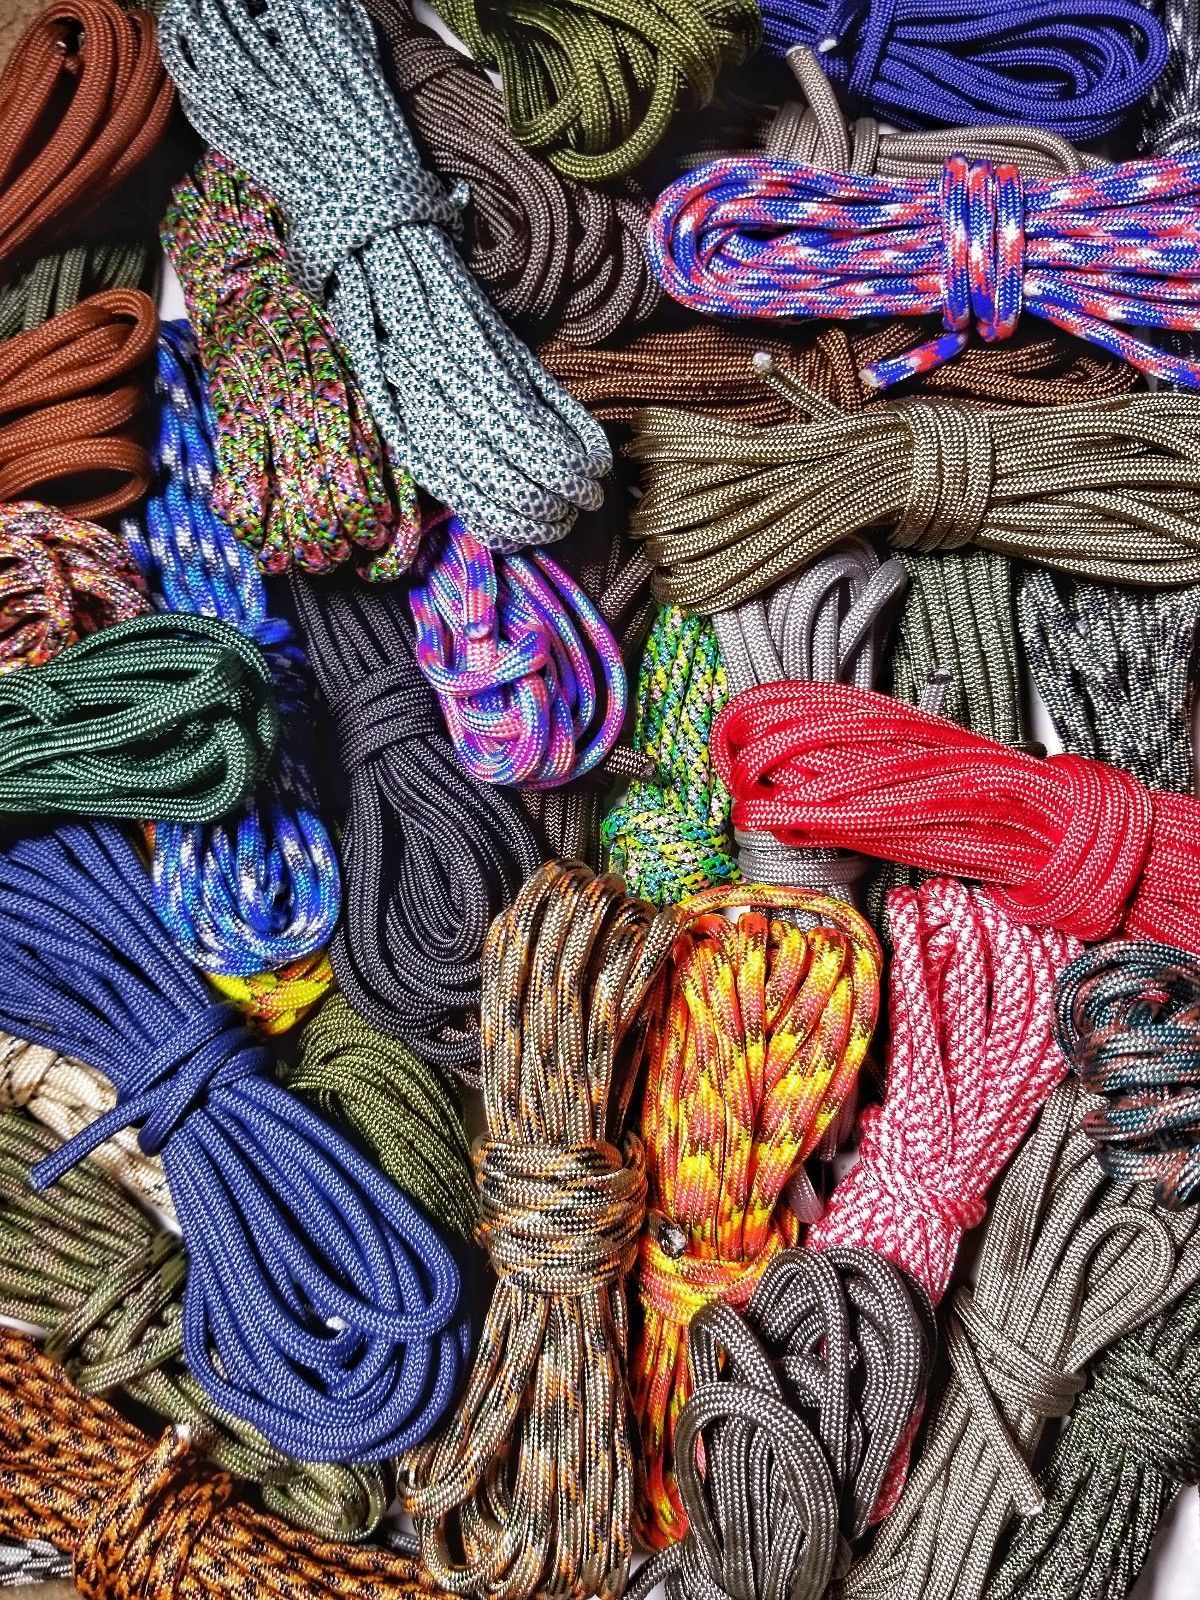 Details About Paracord Variety Pack 100 Feet Of 10 Random Colors